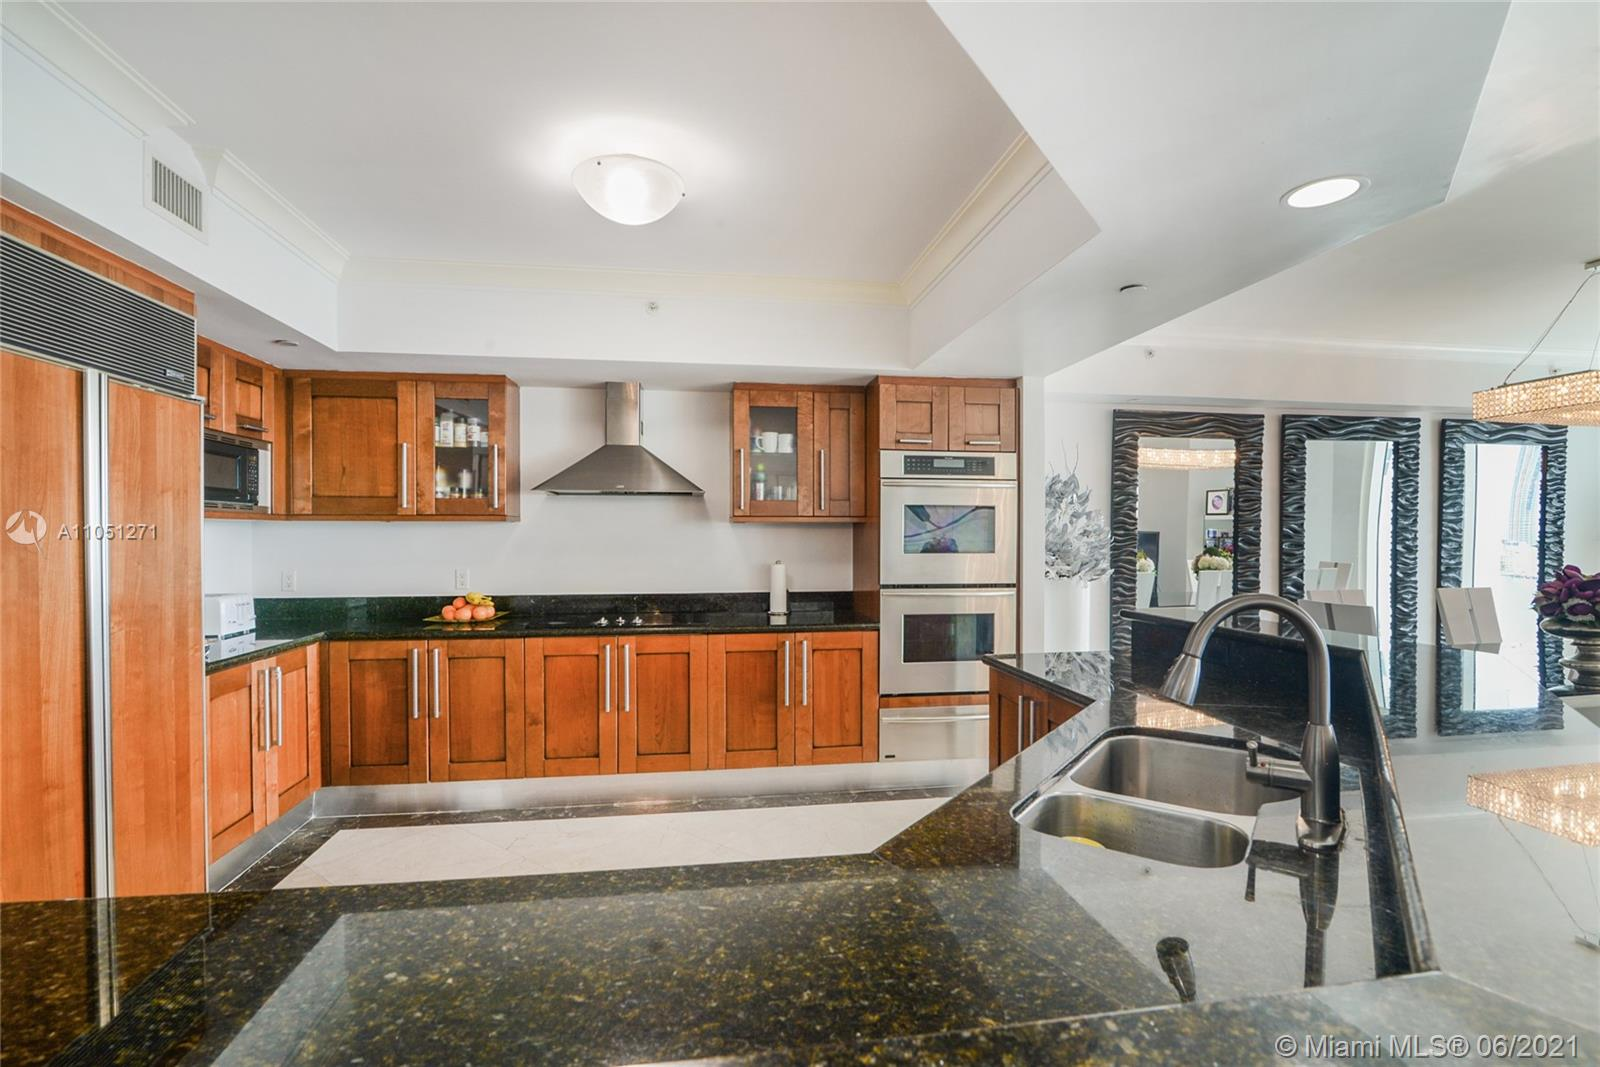 Photo of 3301 183rd St #1906, Aventura, Florida, 33160 - Hall from the Bedrooms to the  Den, Living and kitchen area